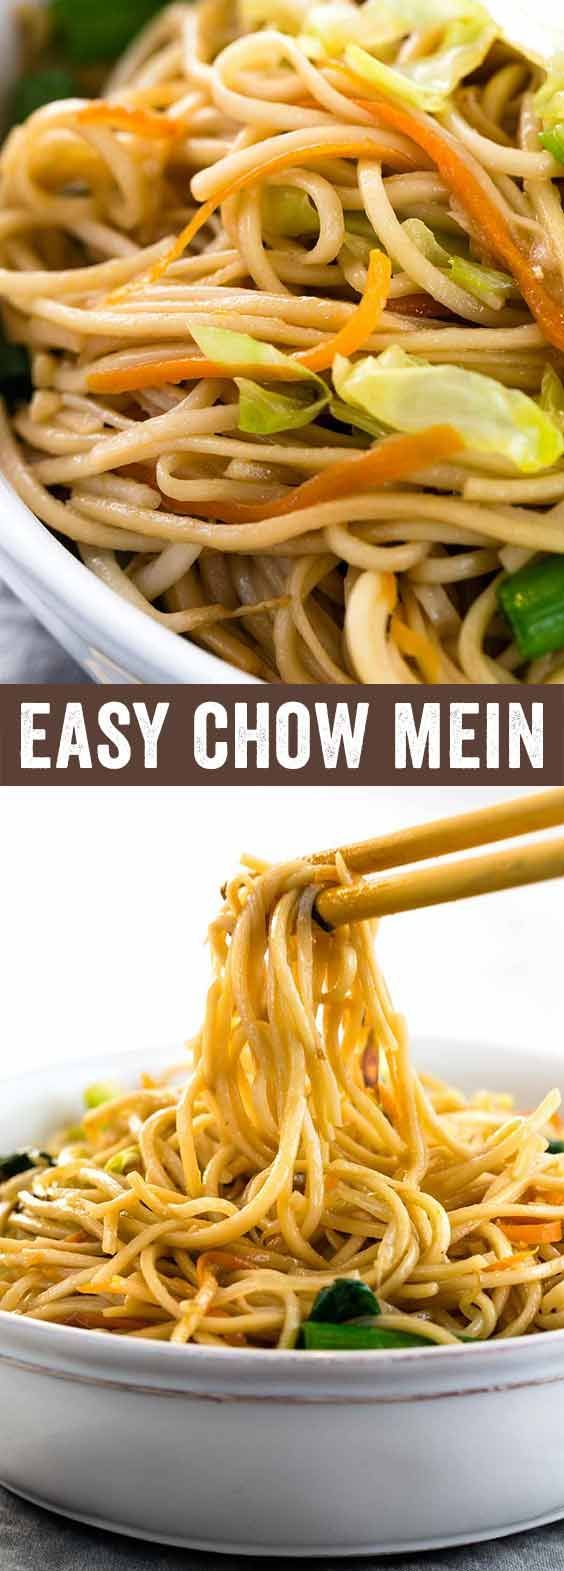 Chinese chow mein noodles tossed in an authentic savory sauce. The noodles are stir-fried with cabbage, carrots, bean sprouts, green onions, ginger and garlic for a flavorful vegetarian dish. A recipe ready in less than 30 minutes or less! via @foodiegavin